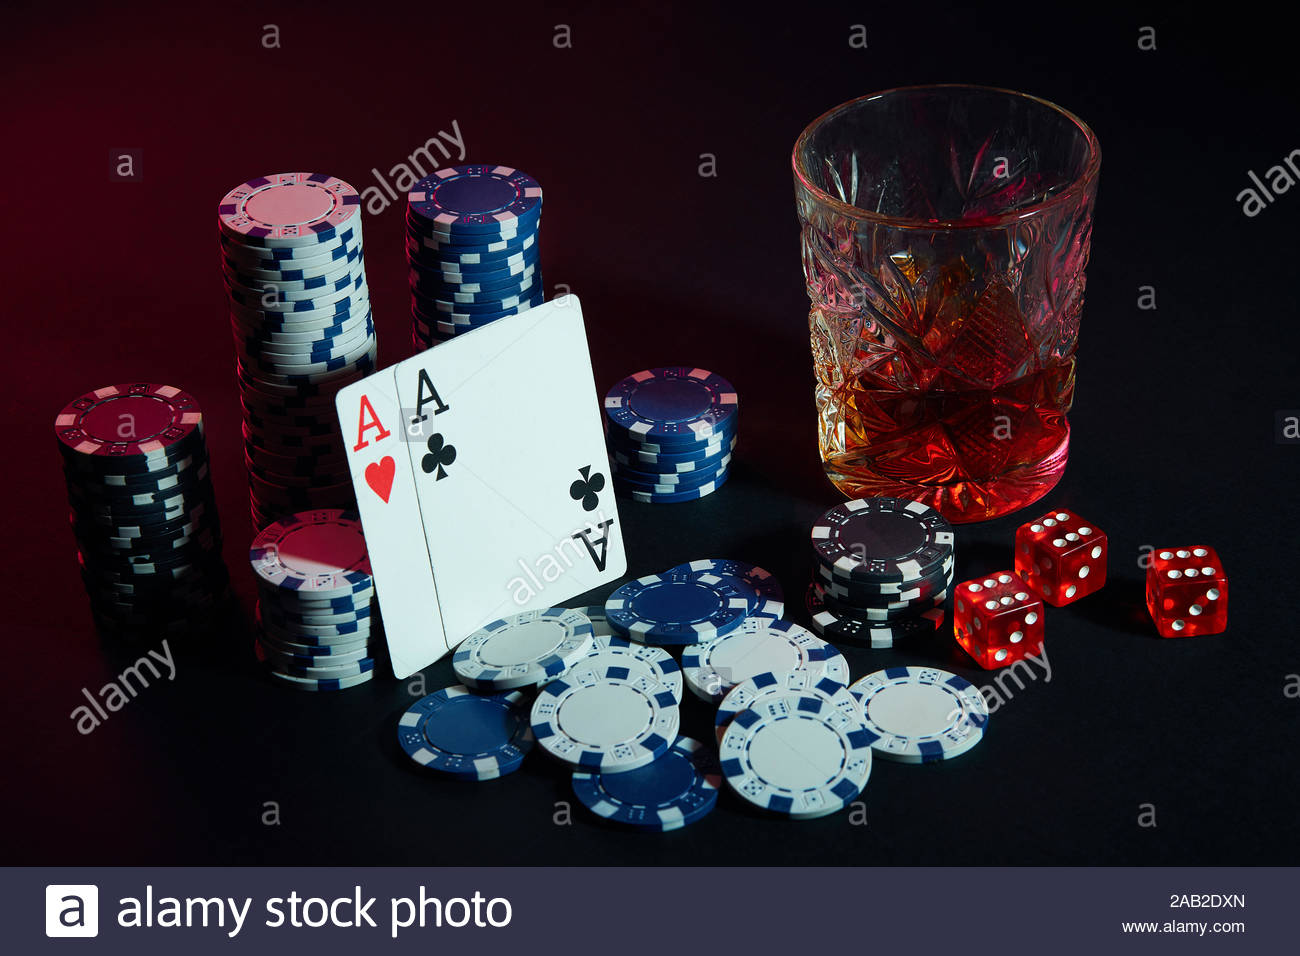 Nine Stable Reasons To Avoid Casino